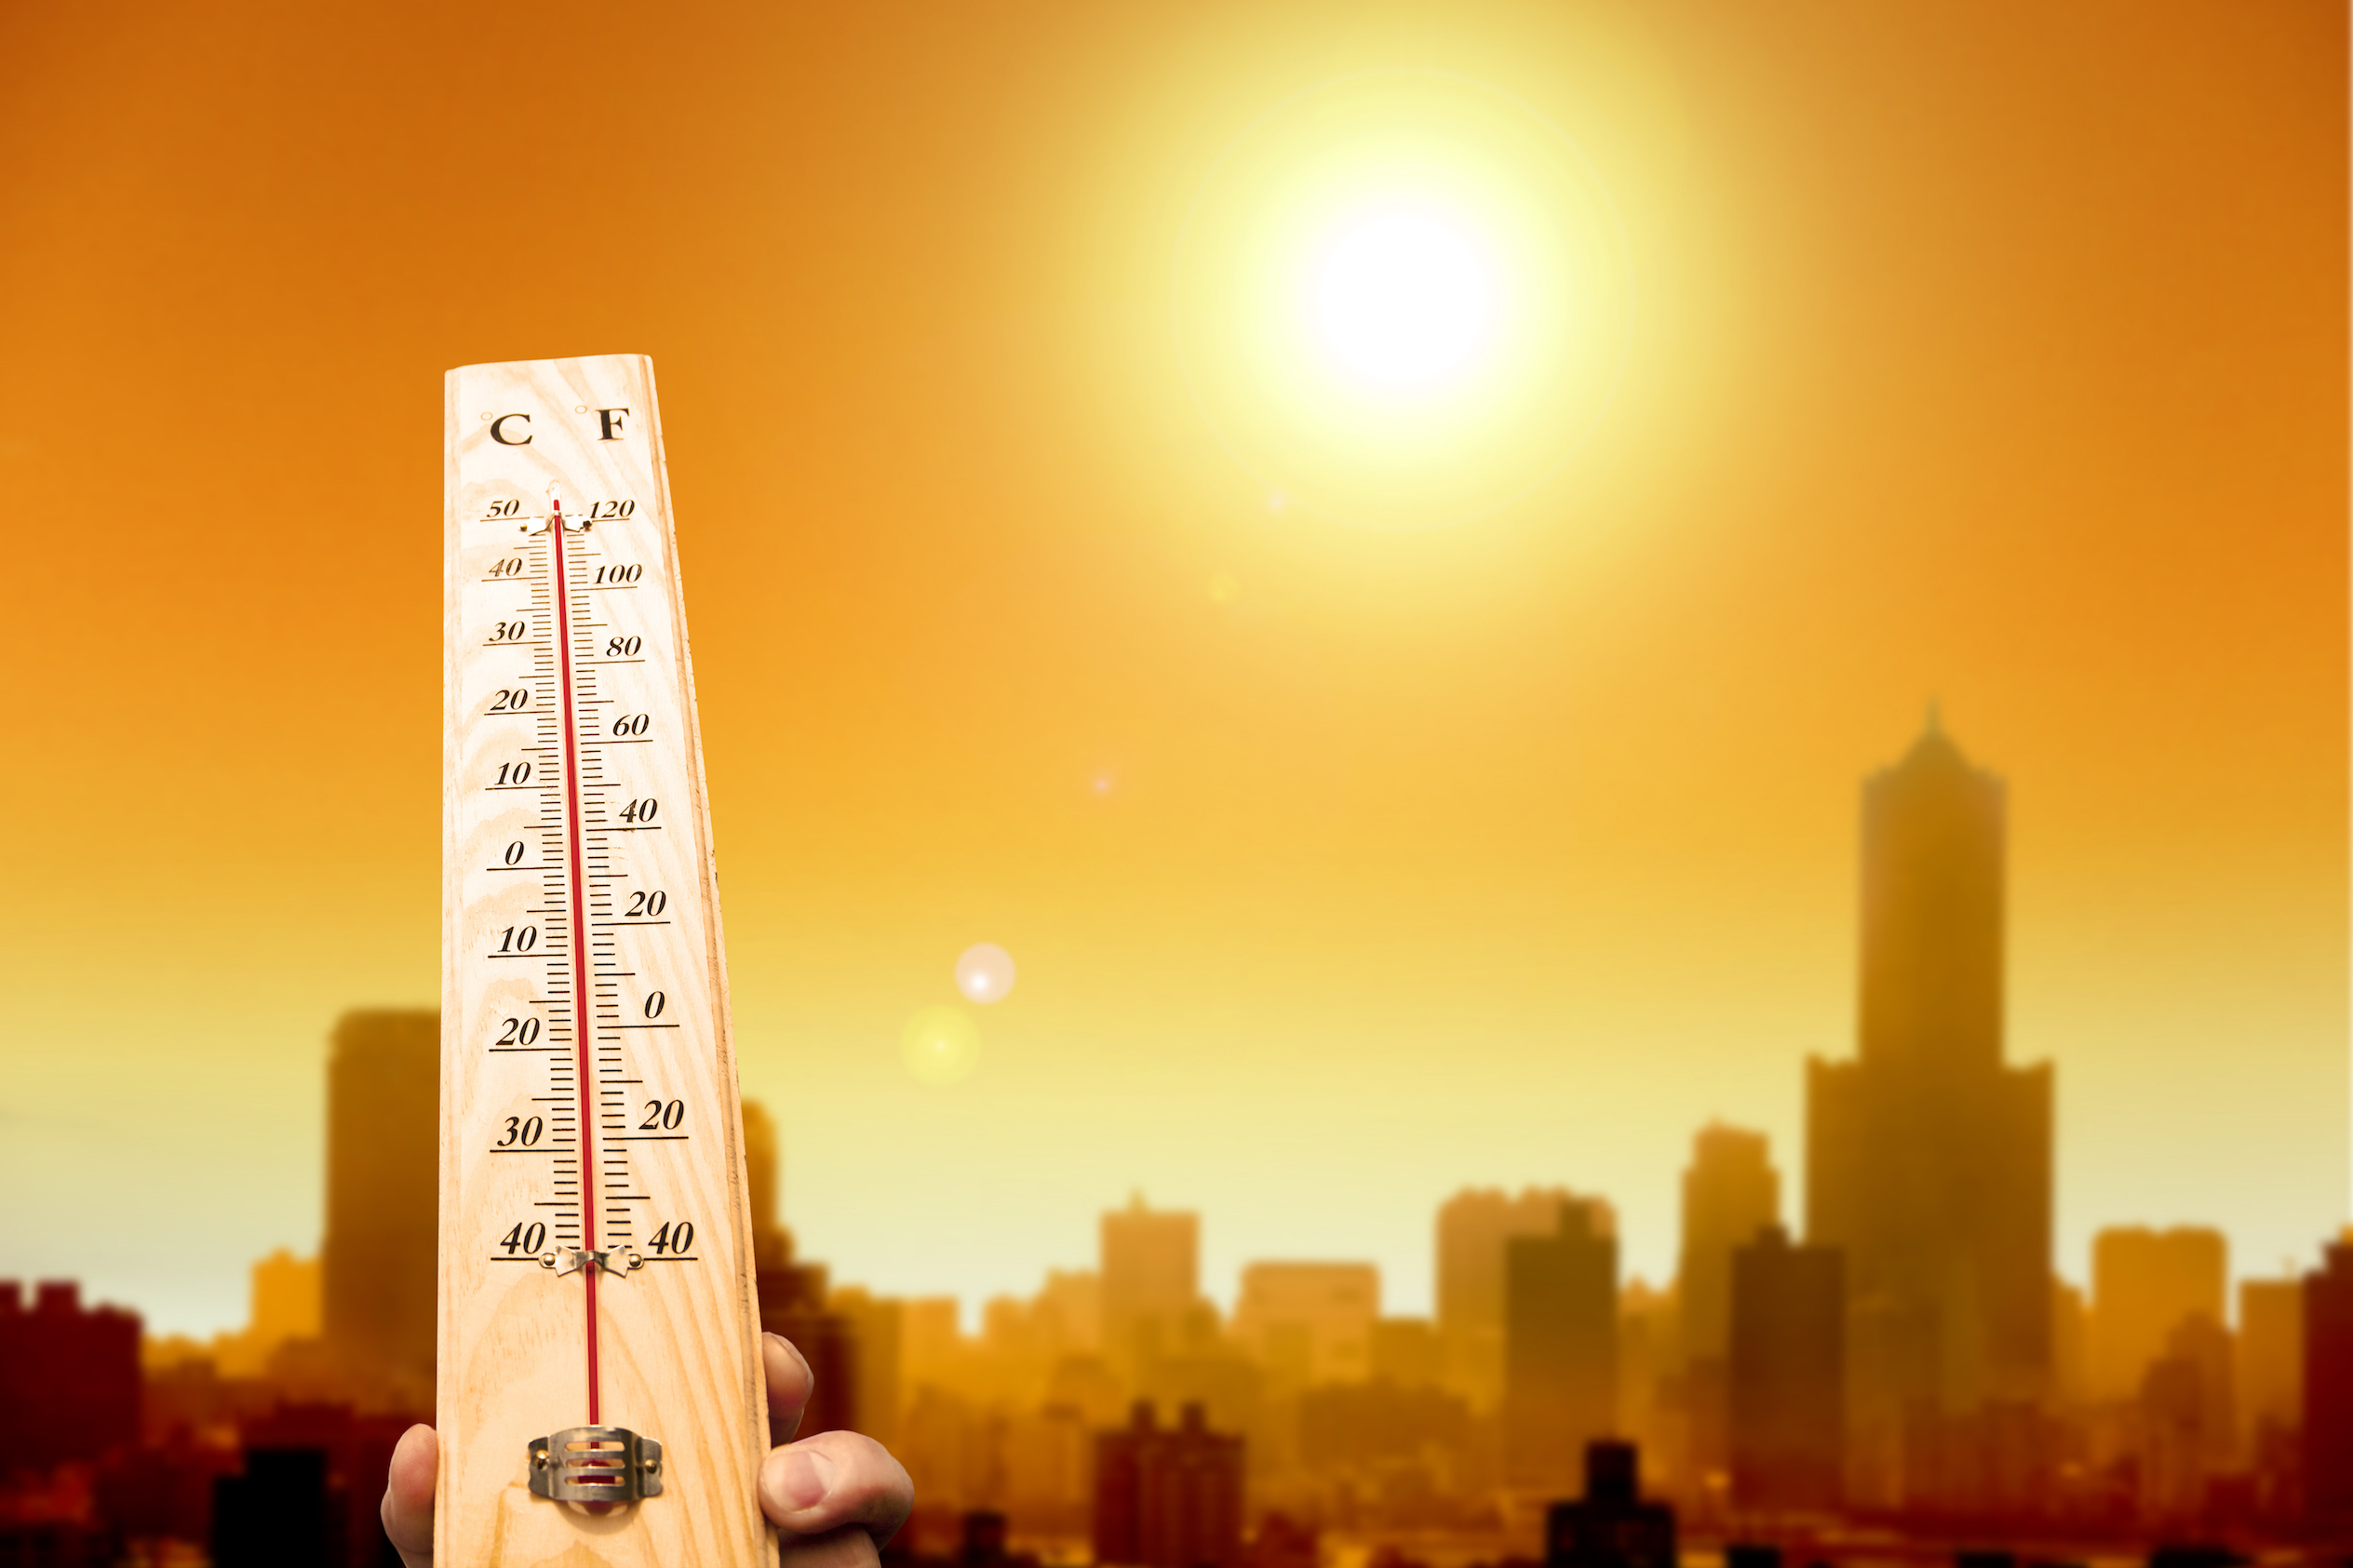 The United States is expected to have more days with extreme heat, more frequent and persistent heat waves, and longer growing seasons.